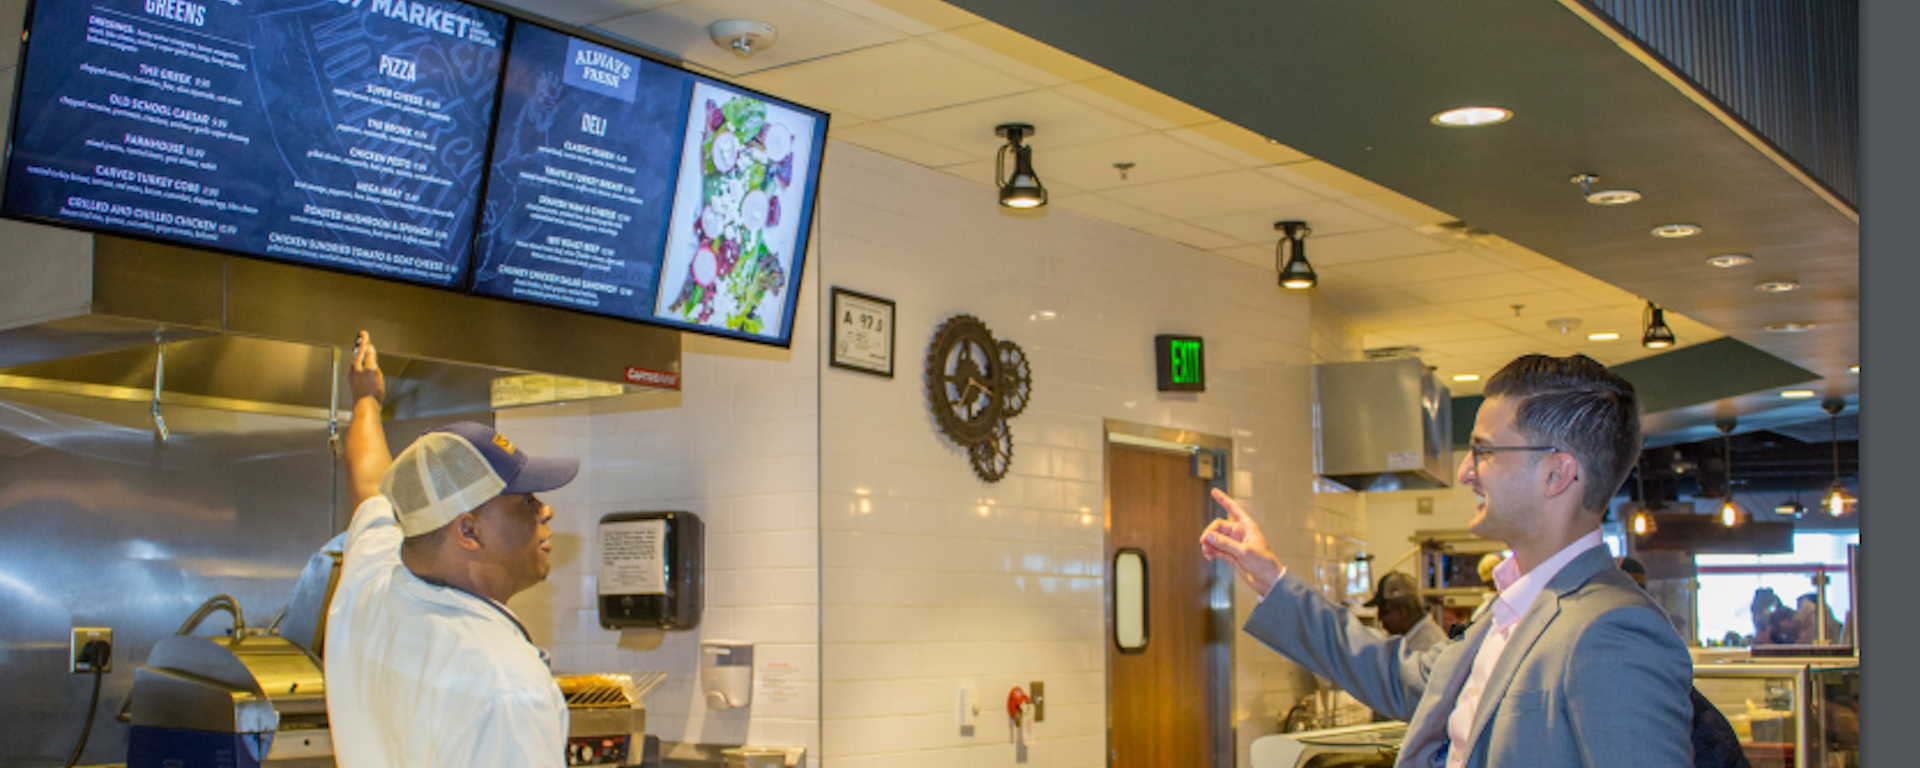 Interactive Displays Change Fortunes At Charlotte Airport Eatery